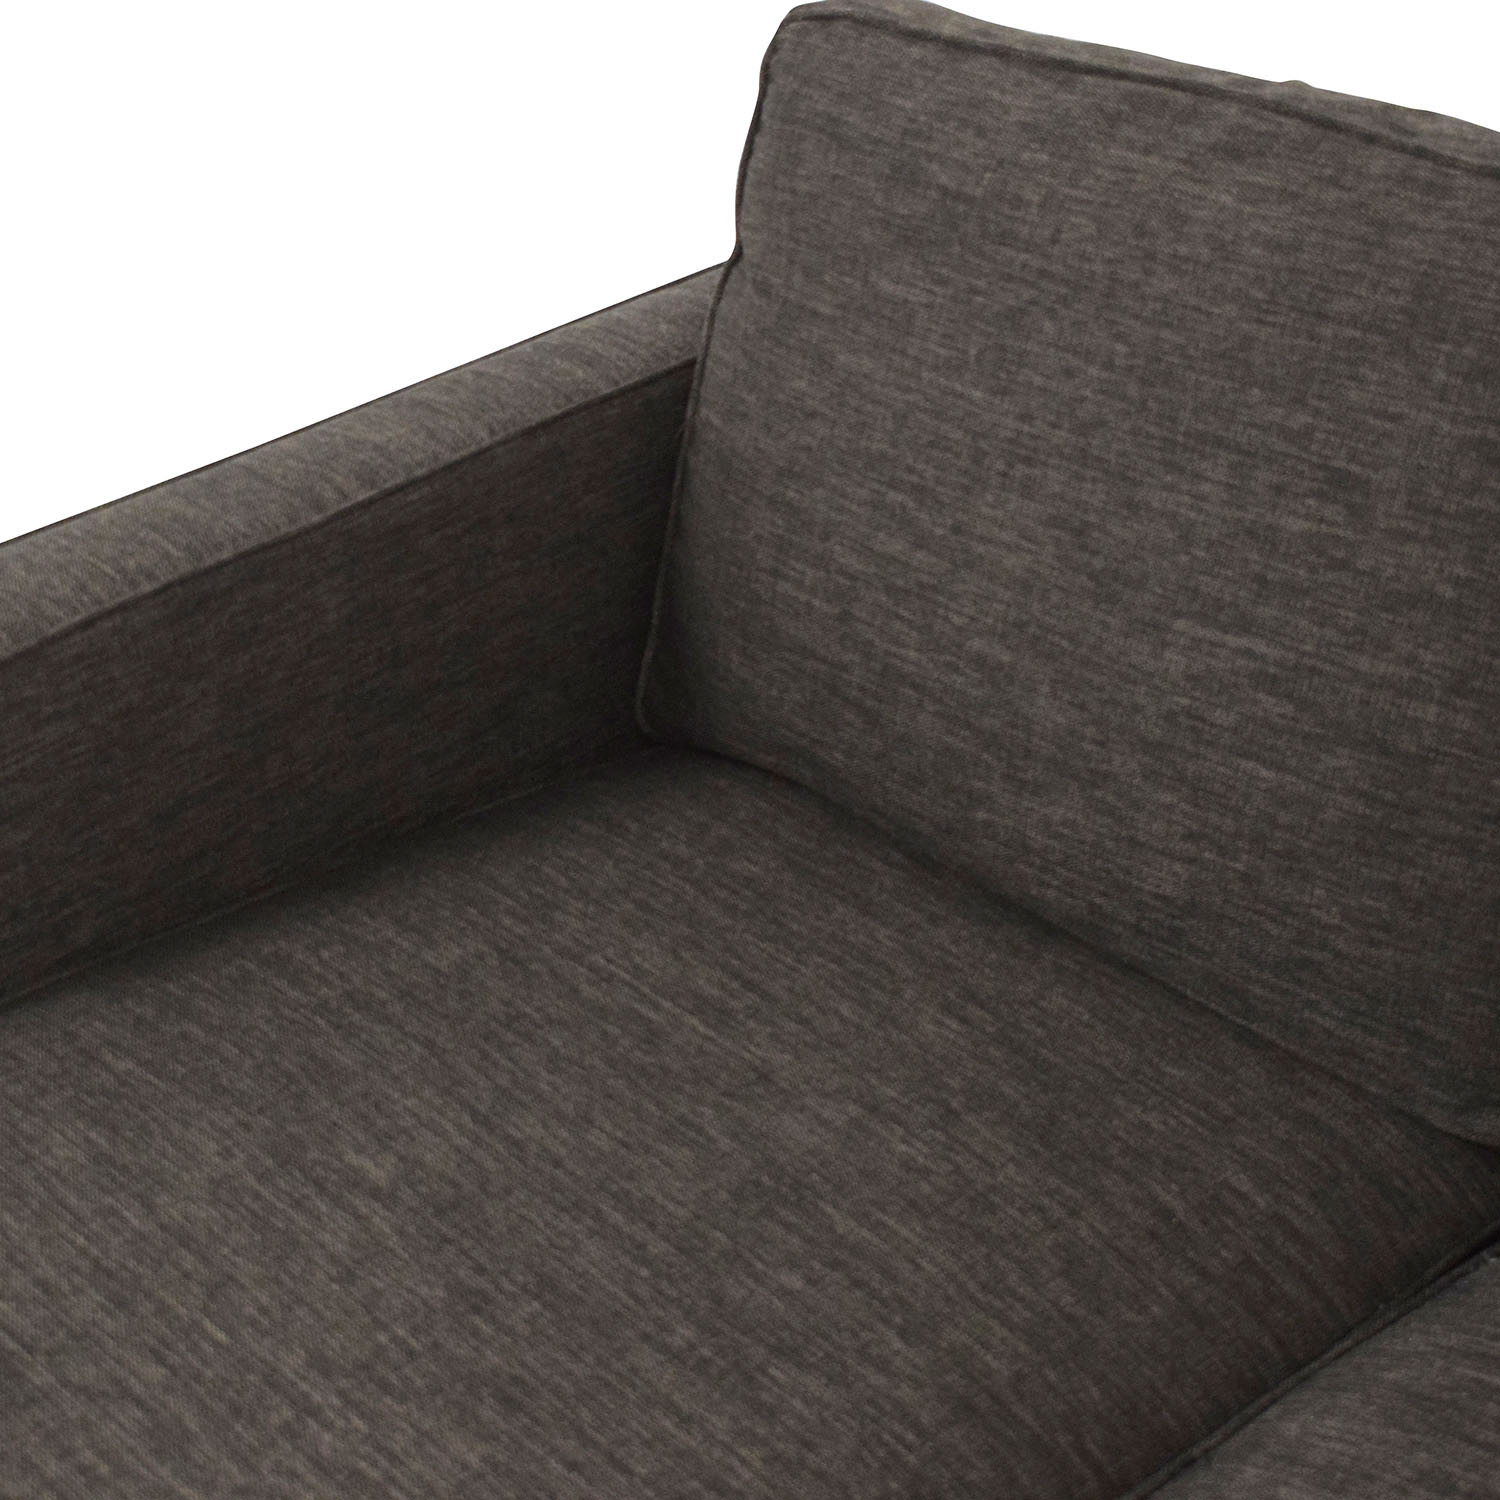 Crate & Barrel Crate & Barrel Reversible Chaise Sofa for sale